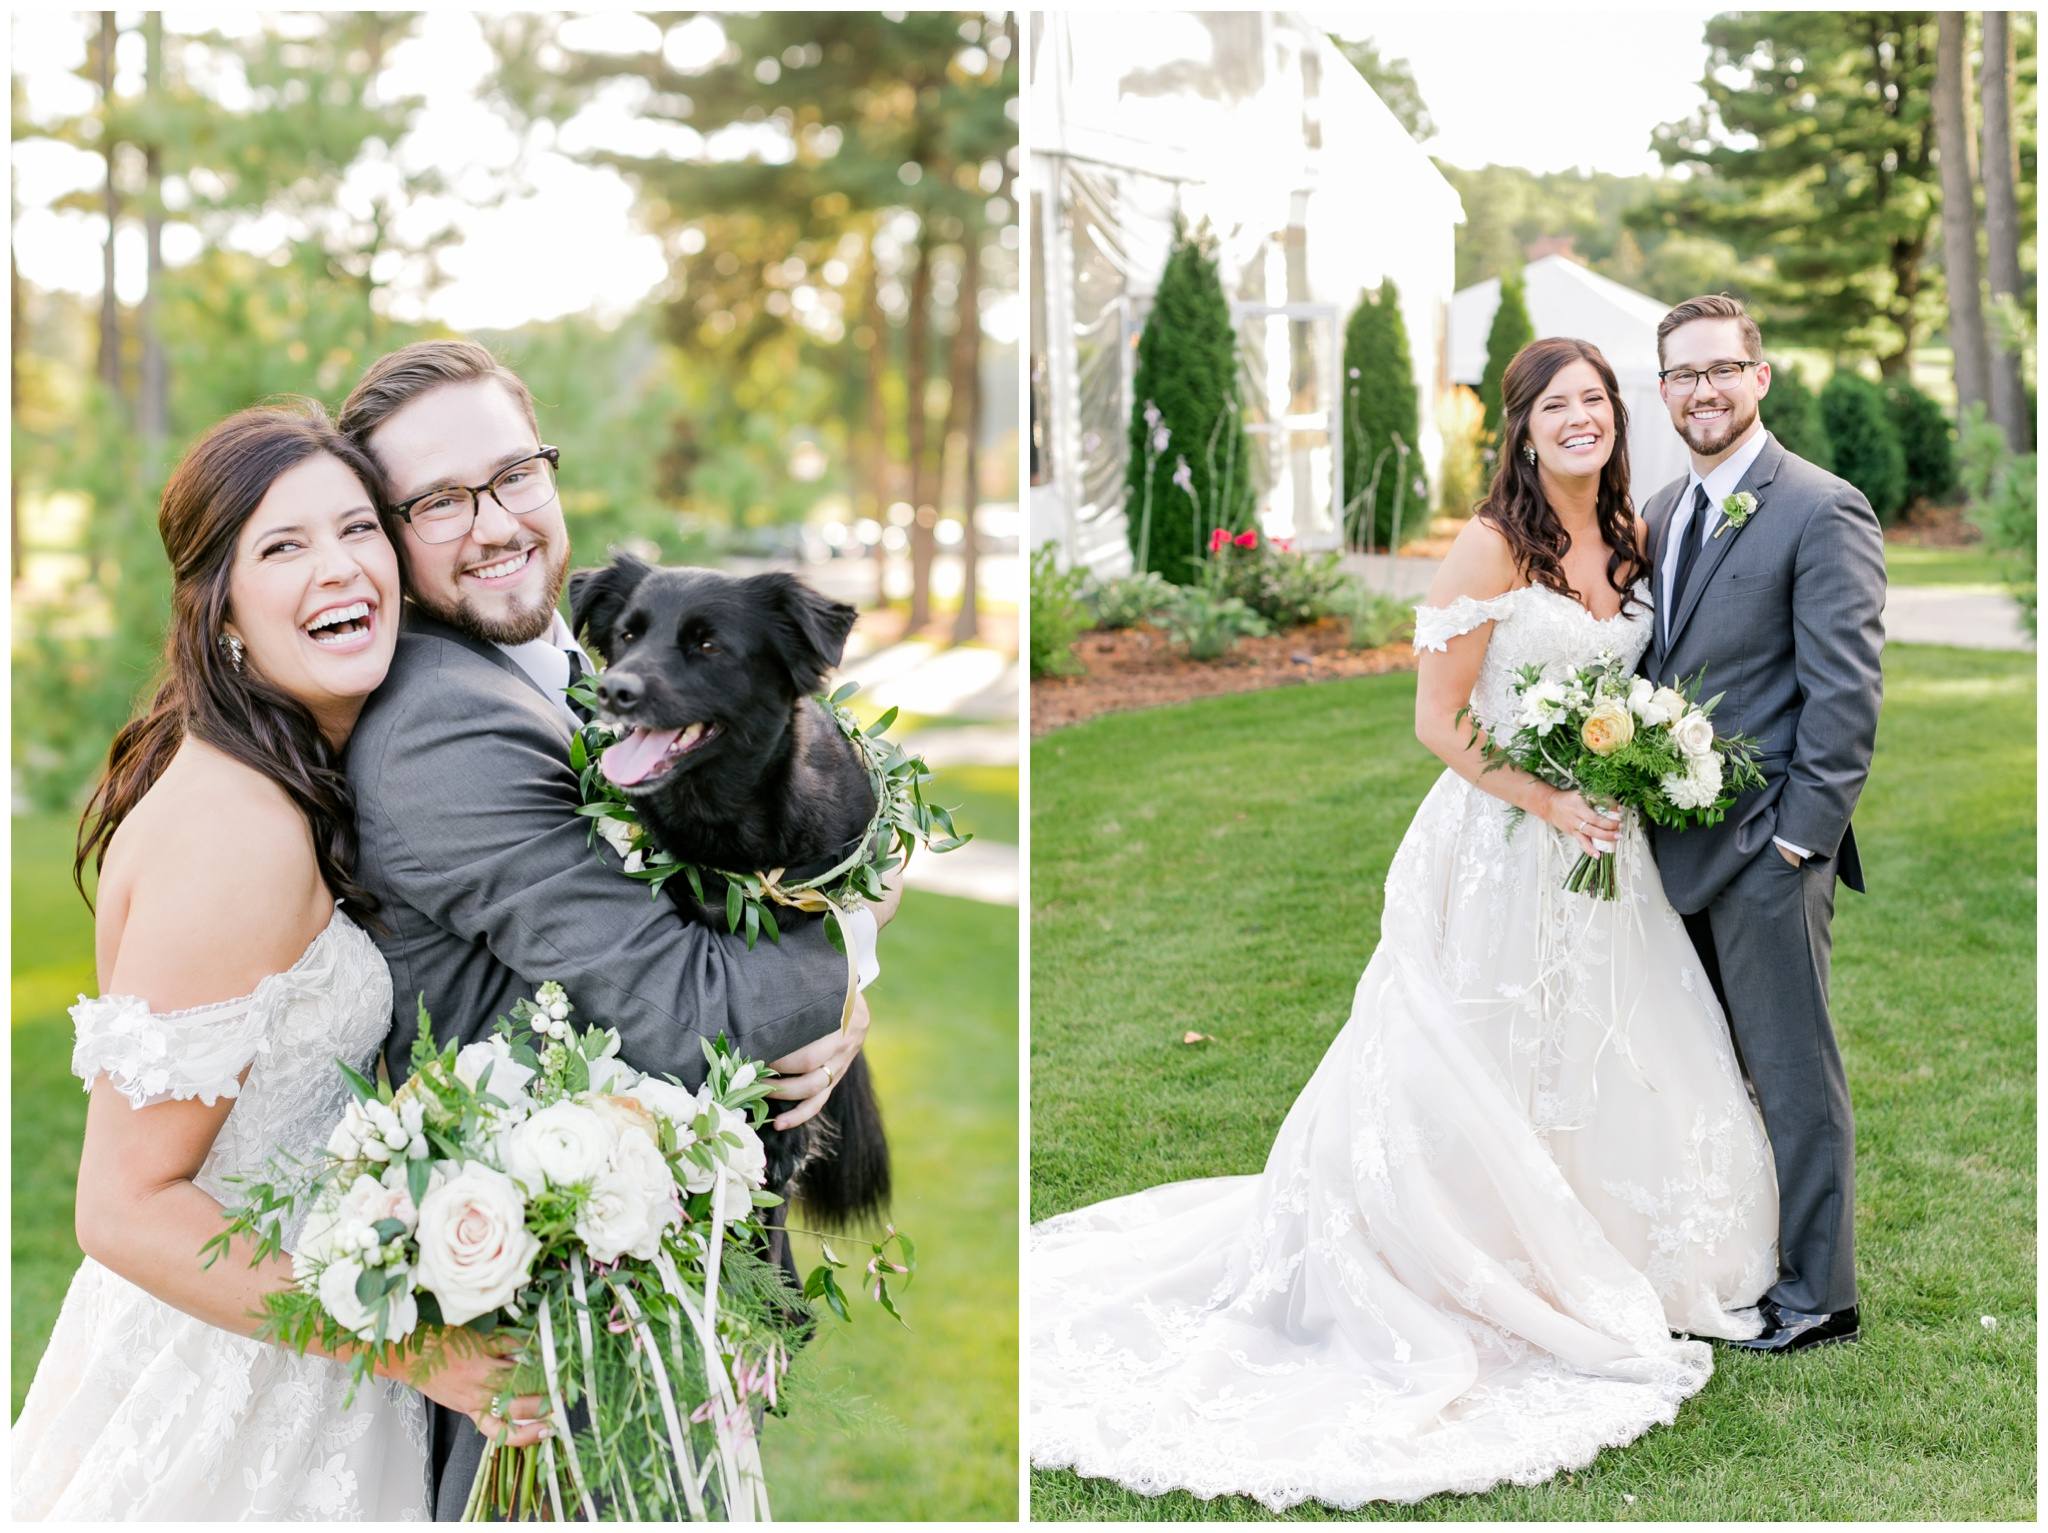 bishops_bay_country_club_wedding_middleton_wisconsin_caynay_photo_4723.jpg